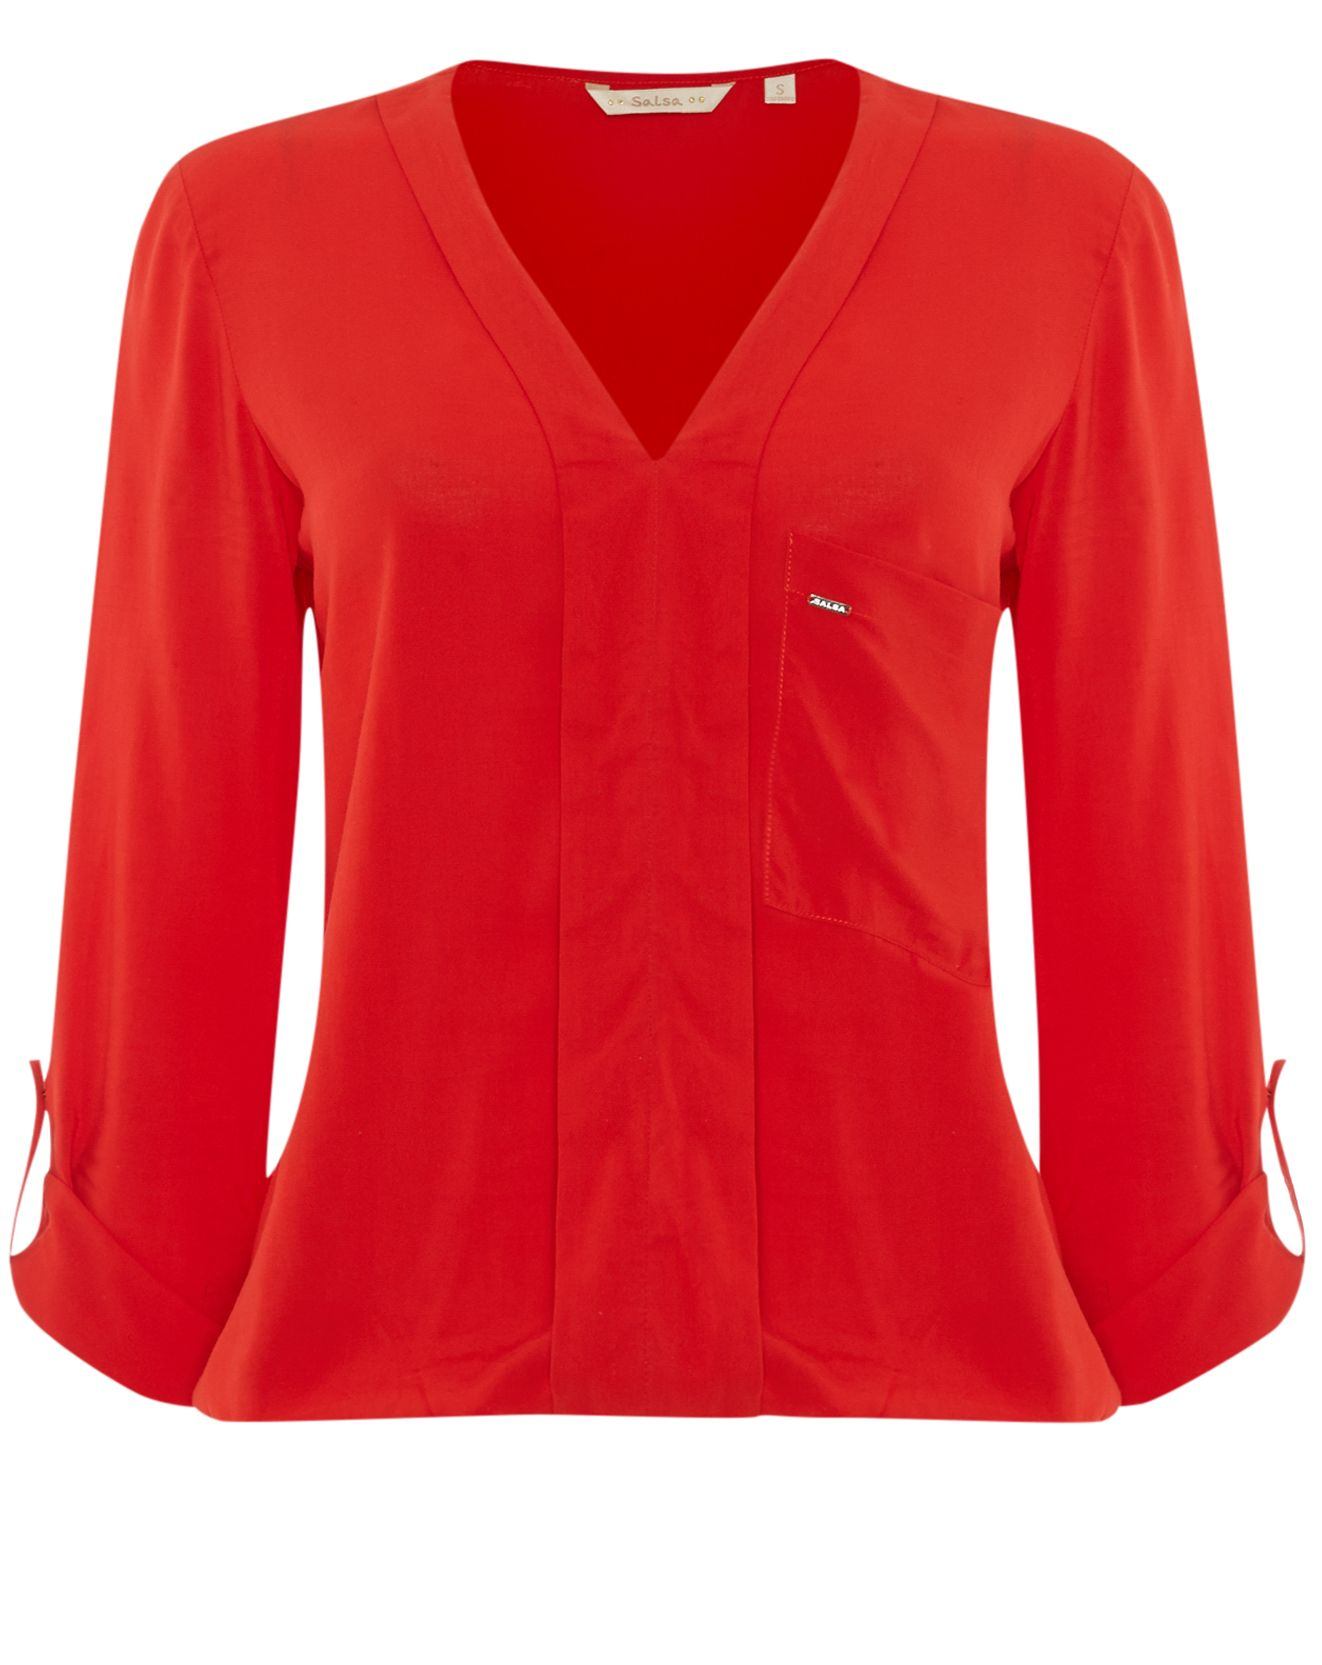 V-neck blouse with rolled up sleeves